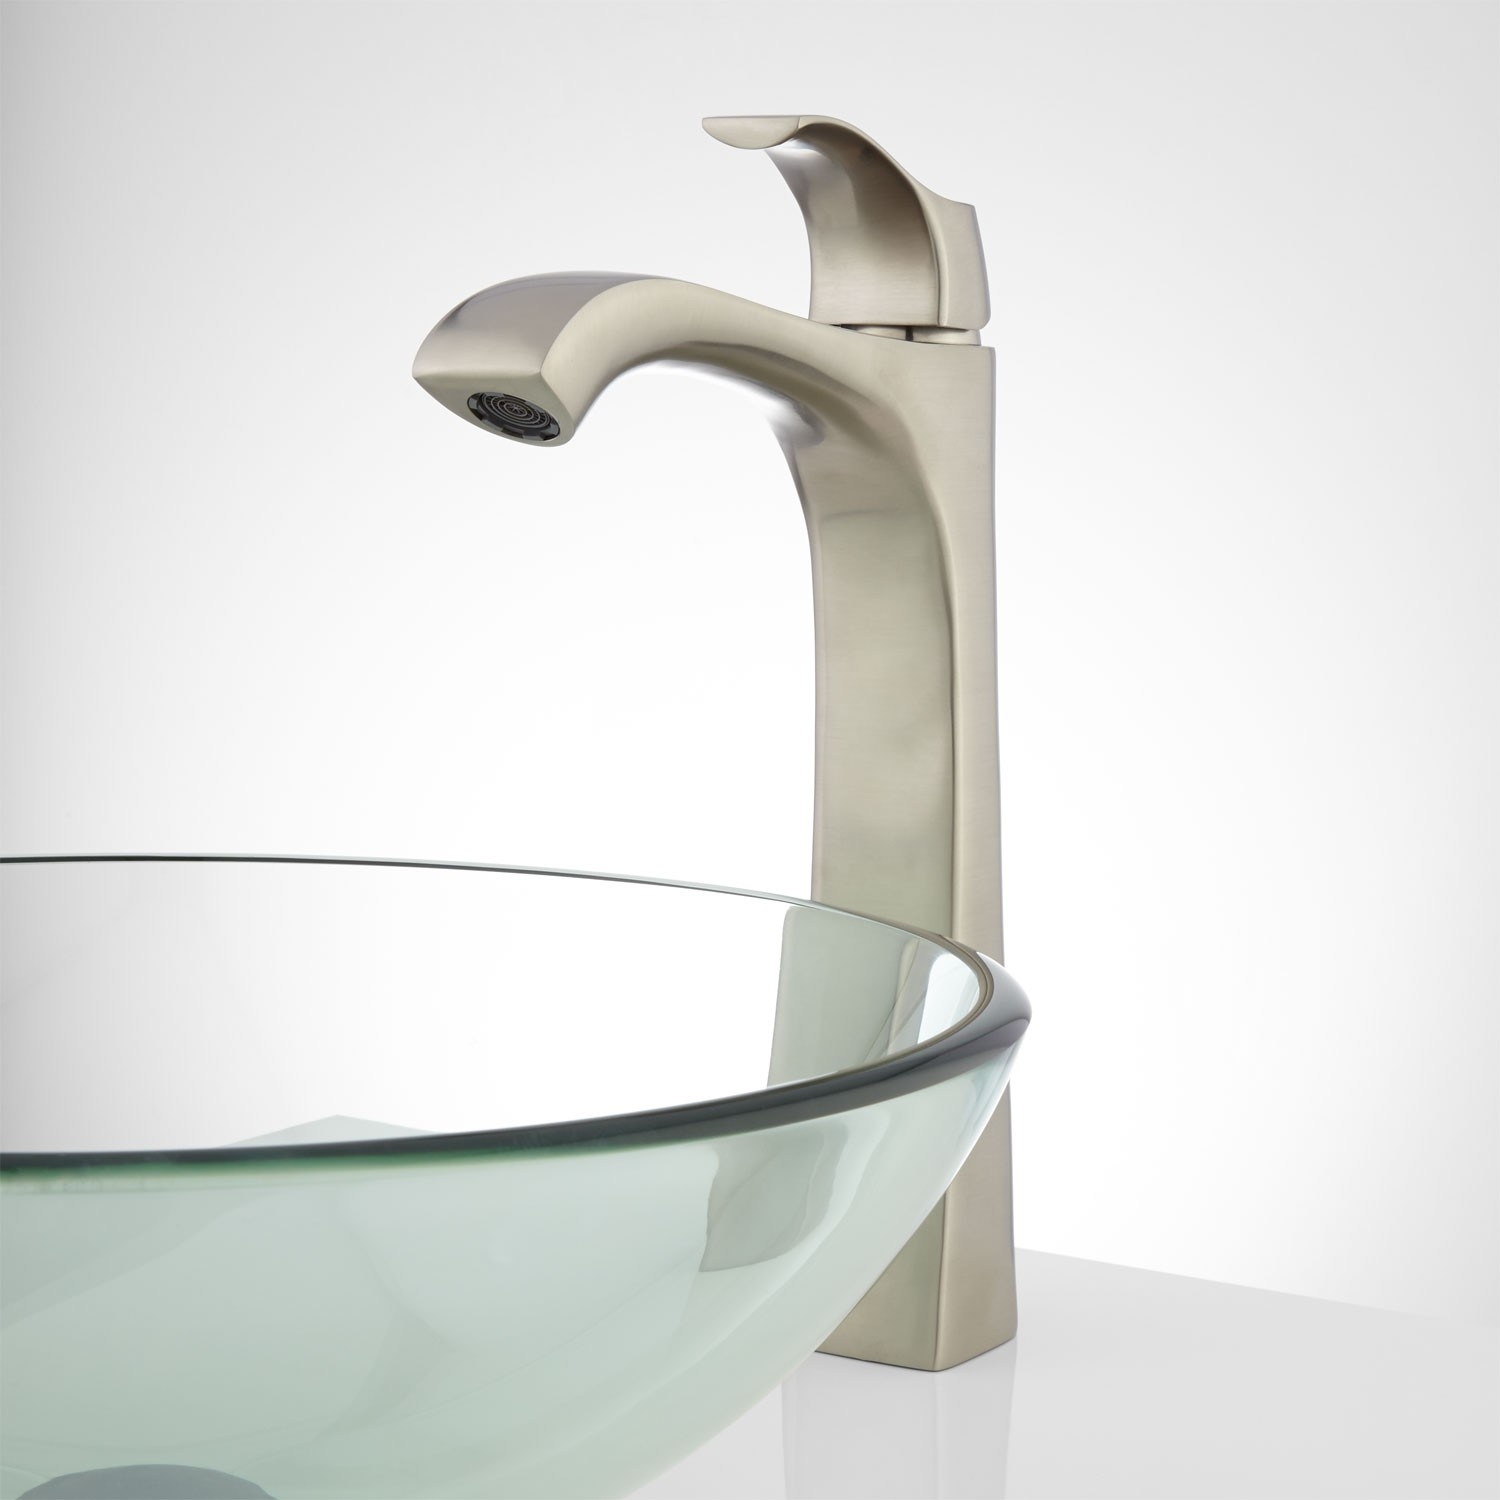 Ideas, clayton single hole vessel faucet single hole faucets bathroom intended for size 1500 x 1500  .